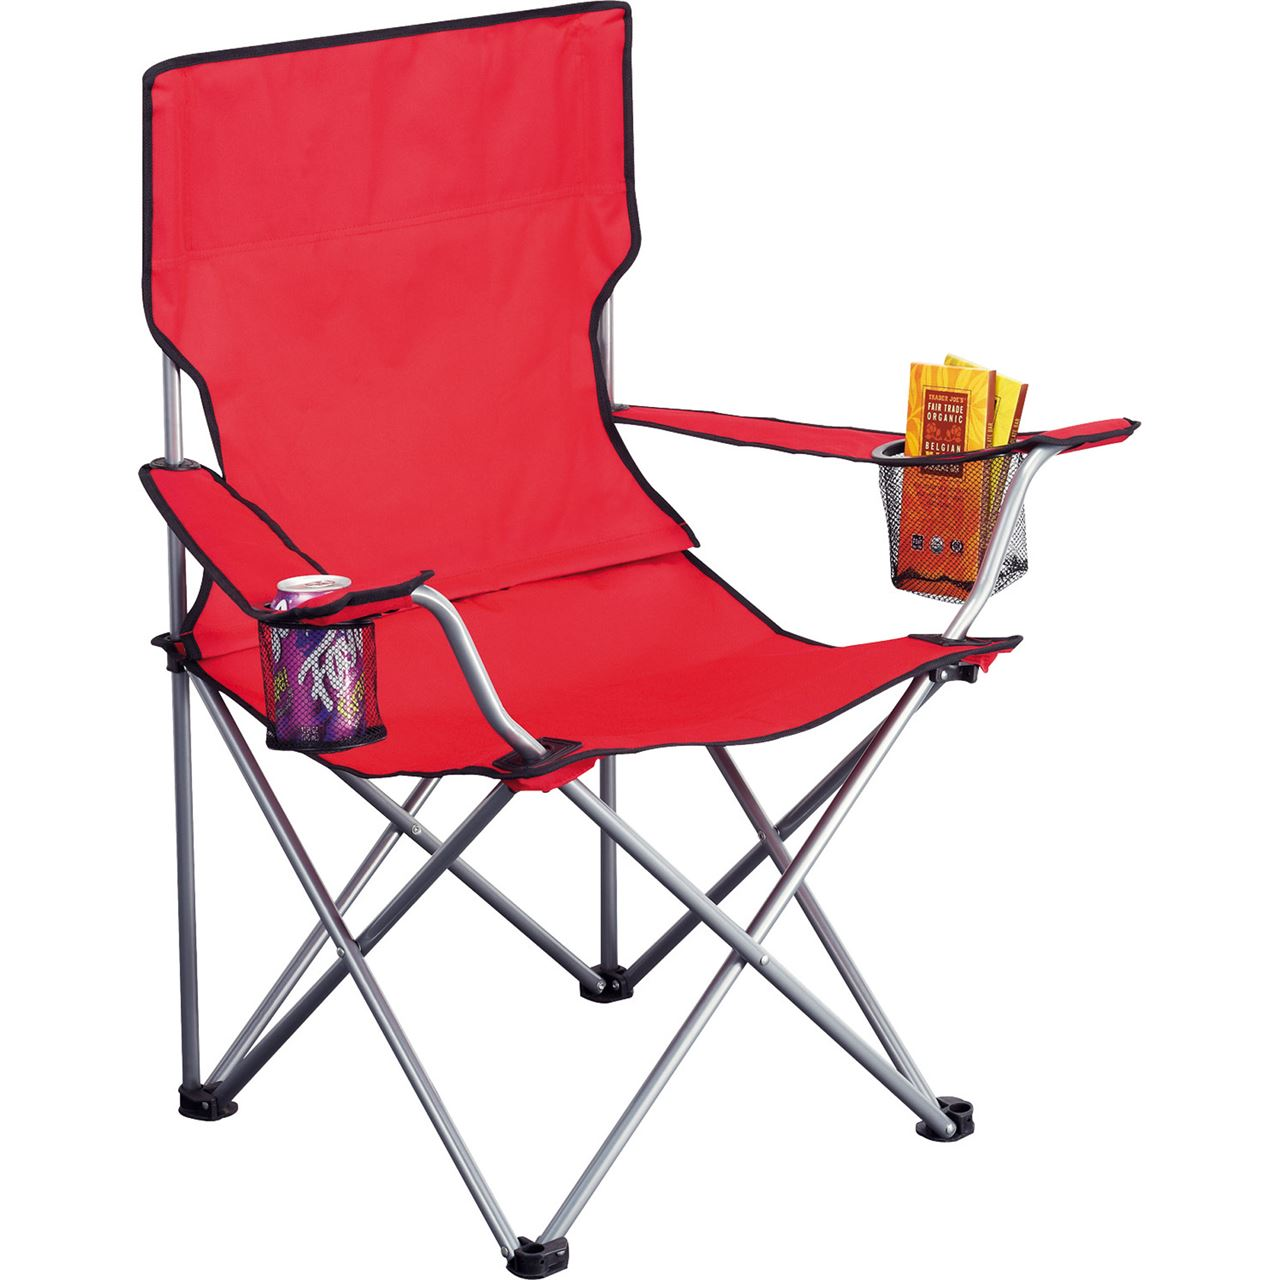 Portable Dental Chair For Sale Show details for Fanatic Event Folding Chair